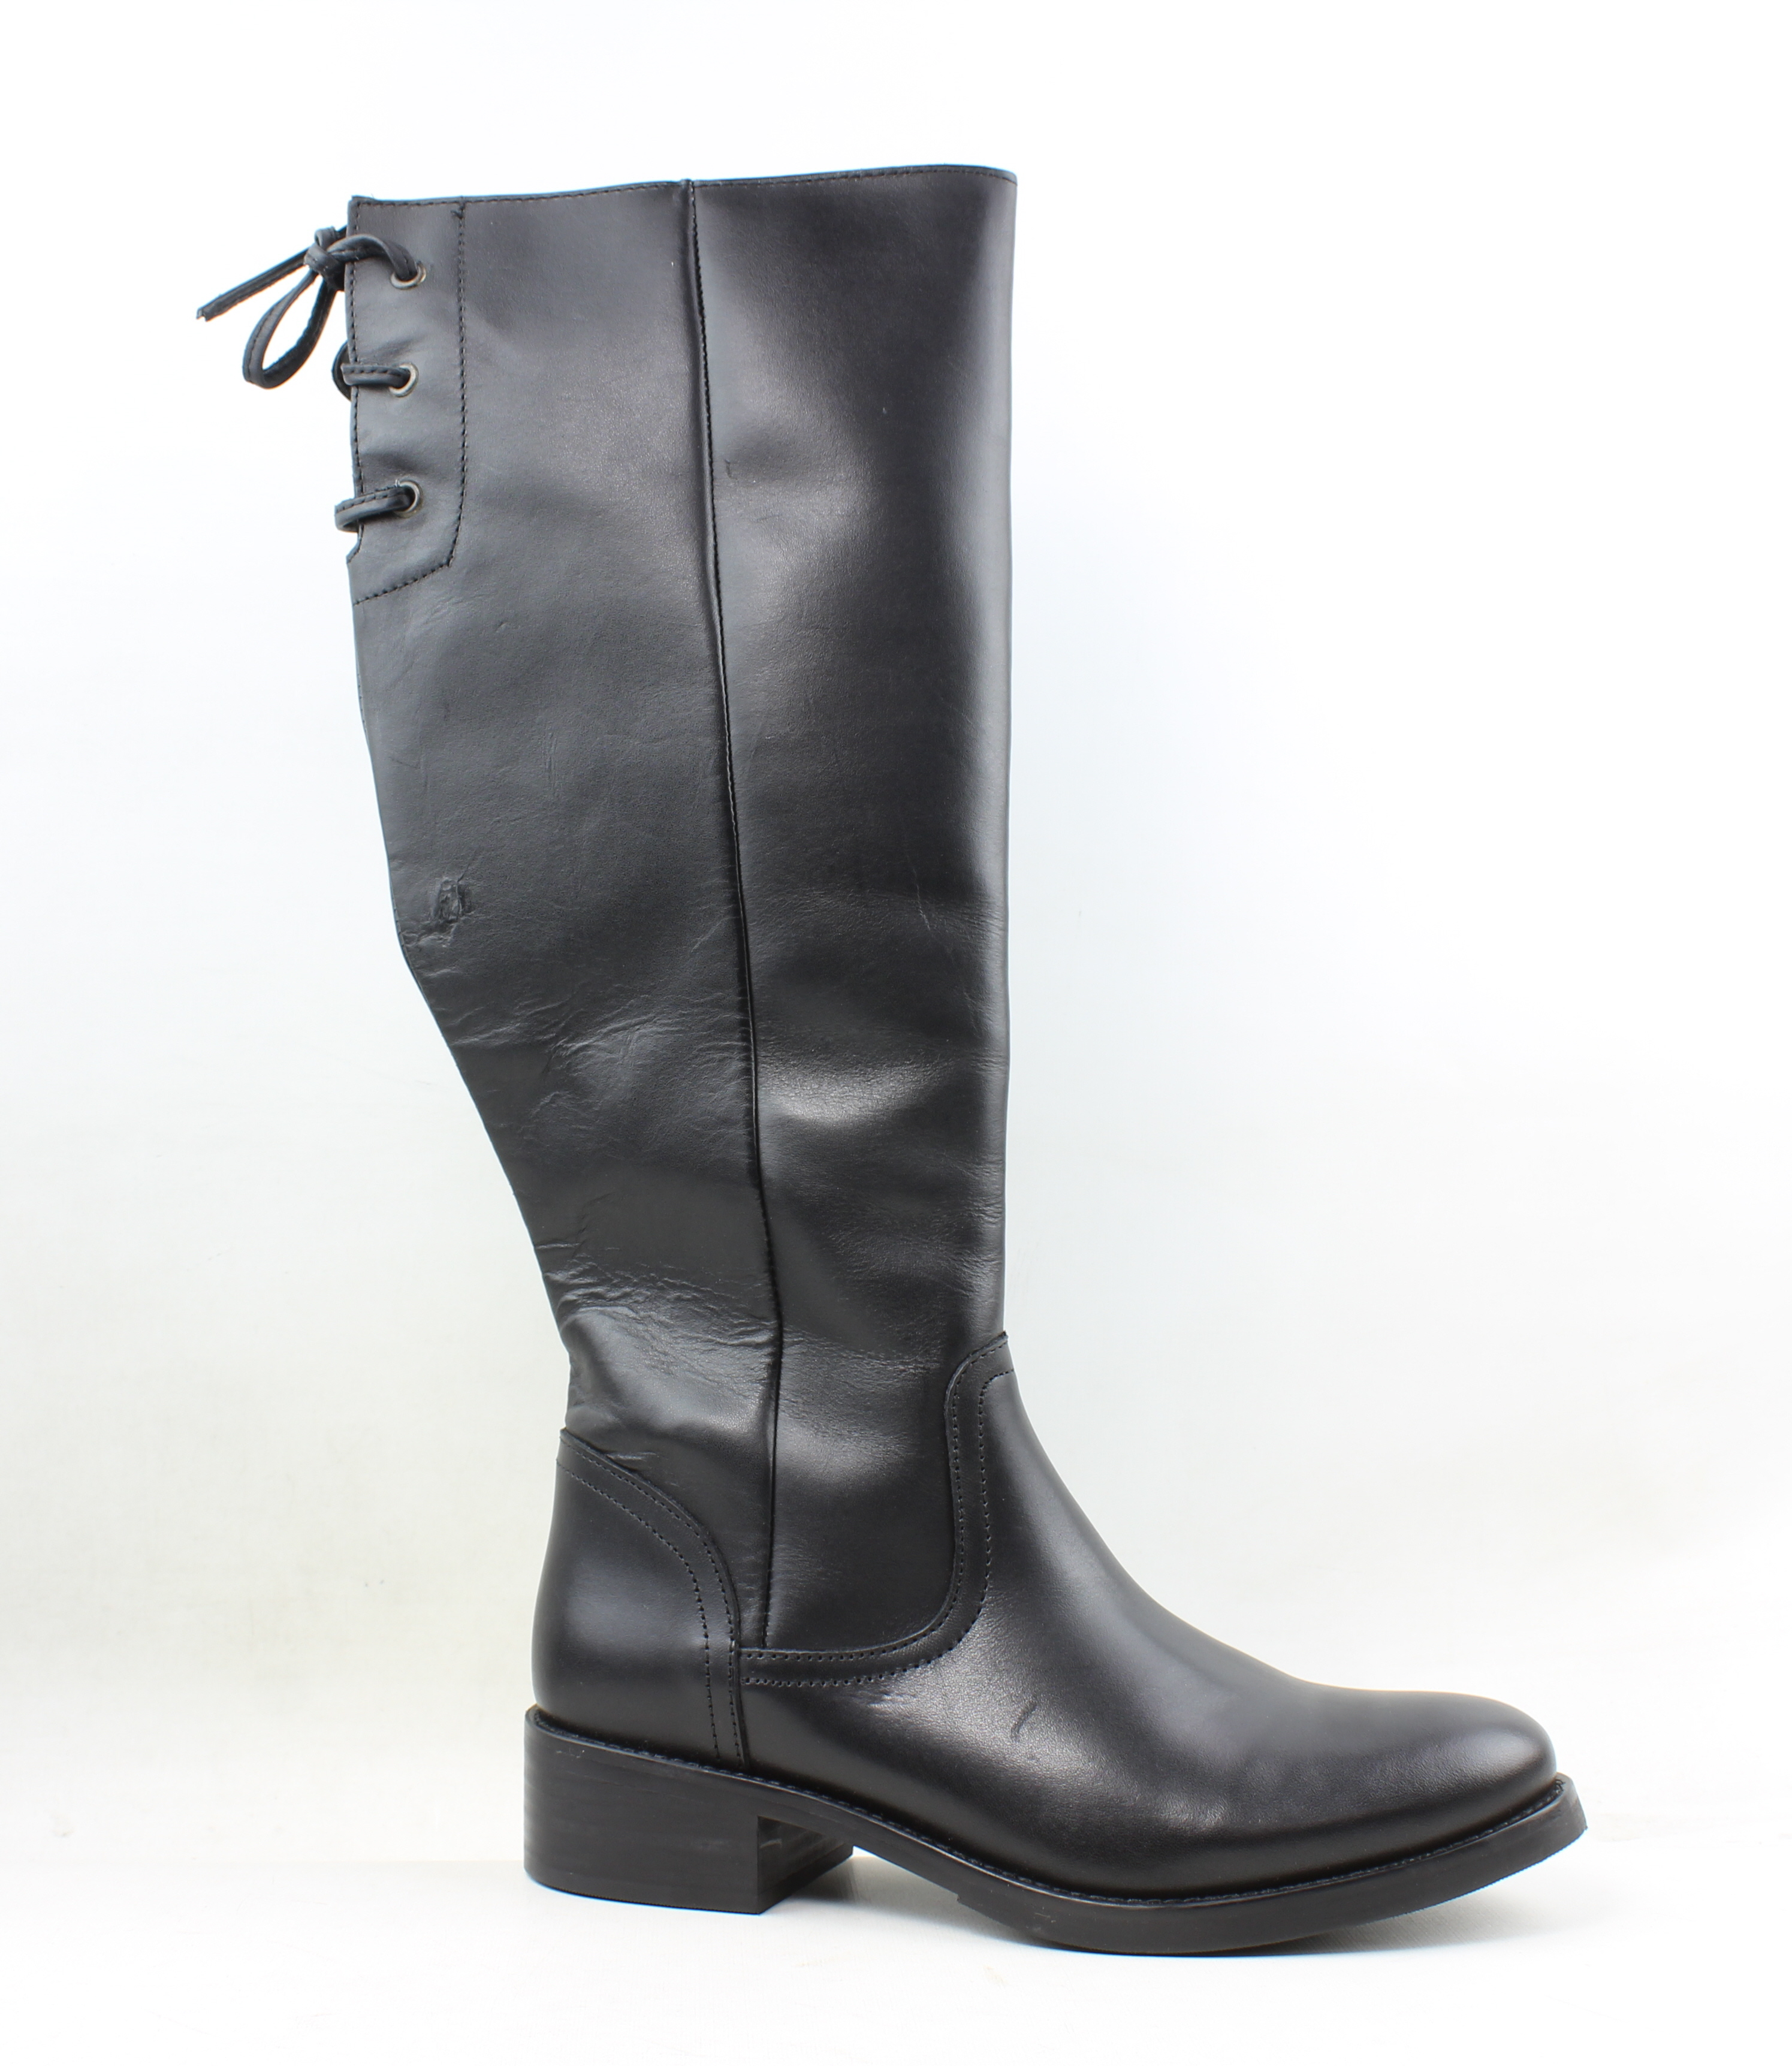 f7fff9194b6 Steve Madden Womens Lover Black Leather Riding Boots Size 8.5 ...